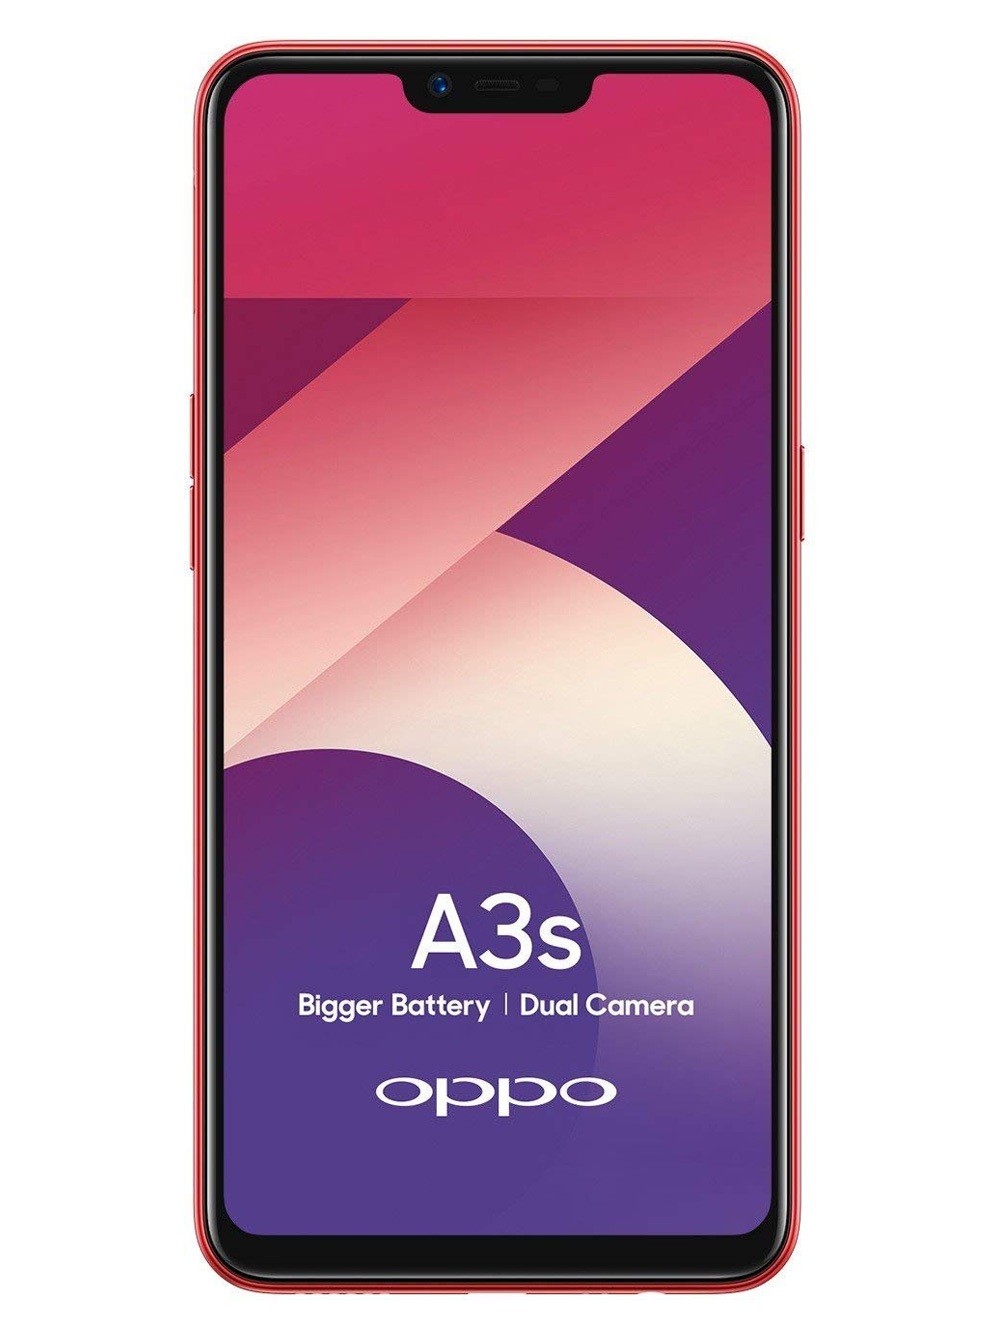 OPPO A3s (Red, 2GB RAM, 16GB Storage)